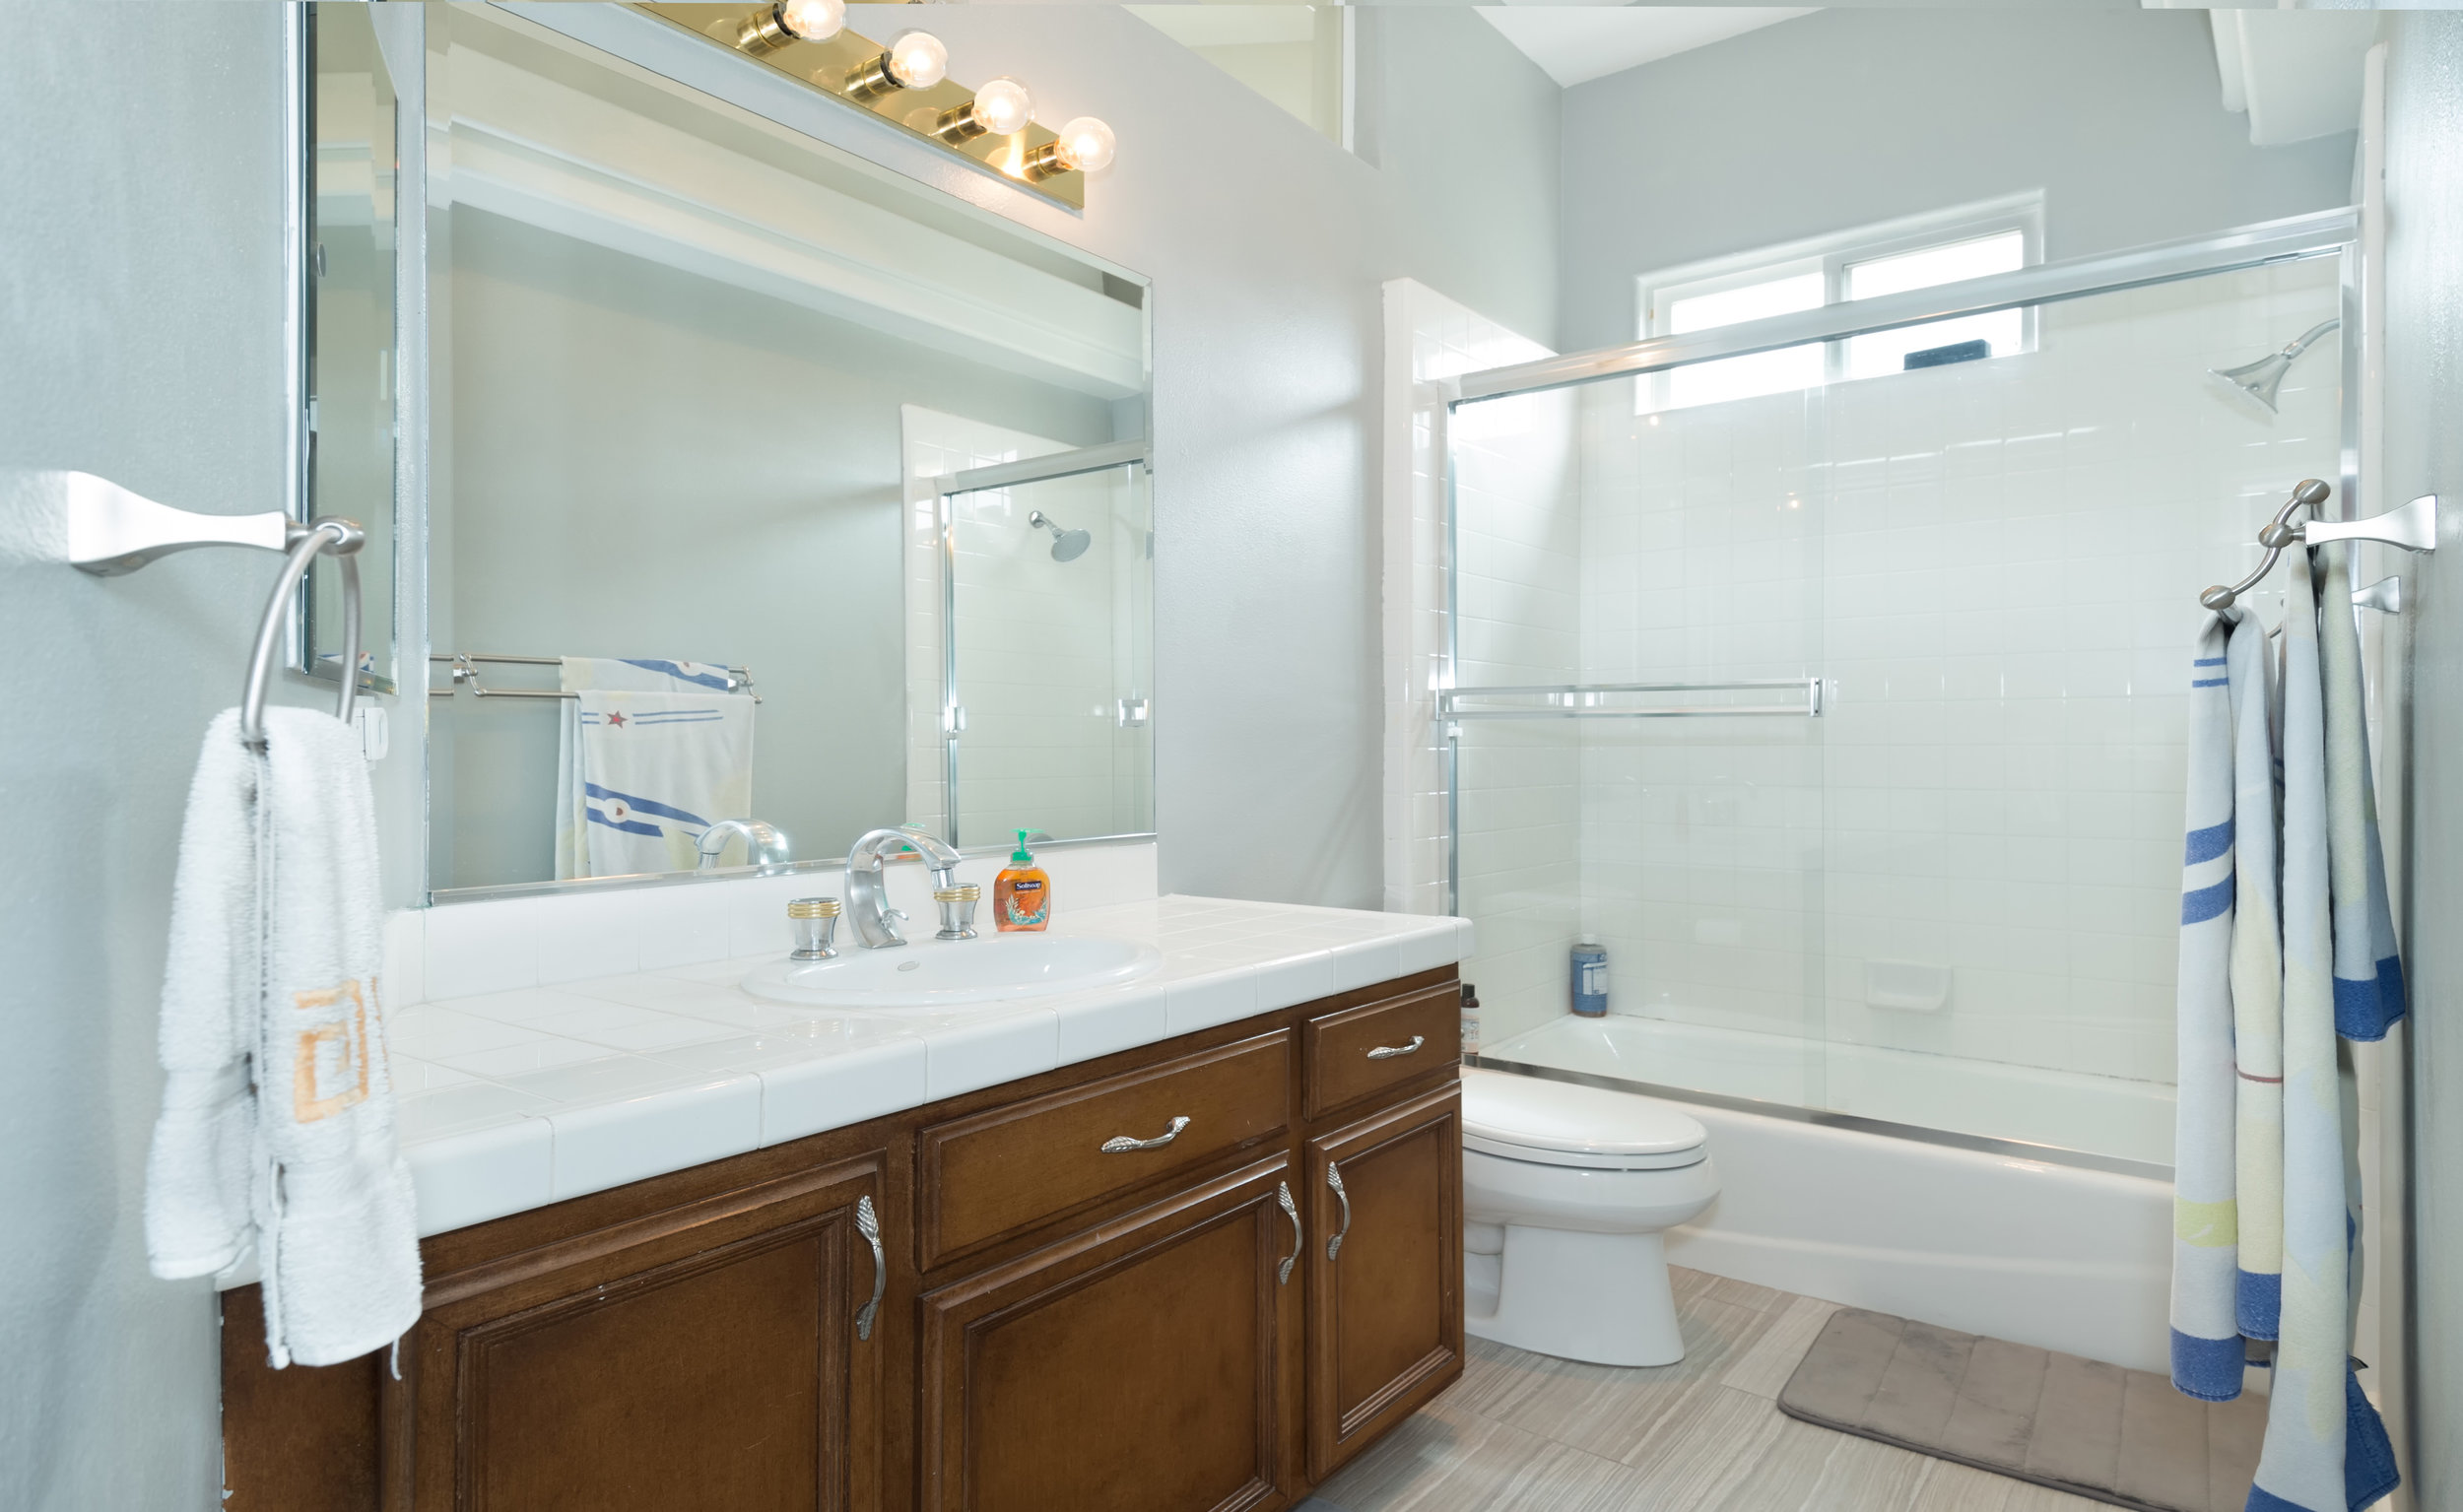 020 bathroom 1 6463 Zuma View Place Malibu For Sale The Malibu Life Team Luxury Real Estate.jpg